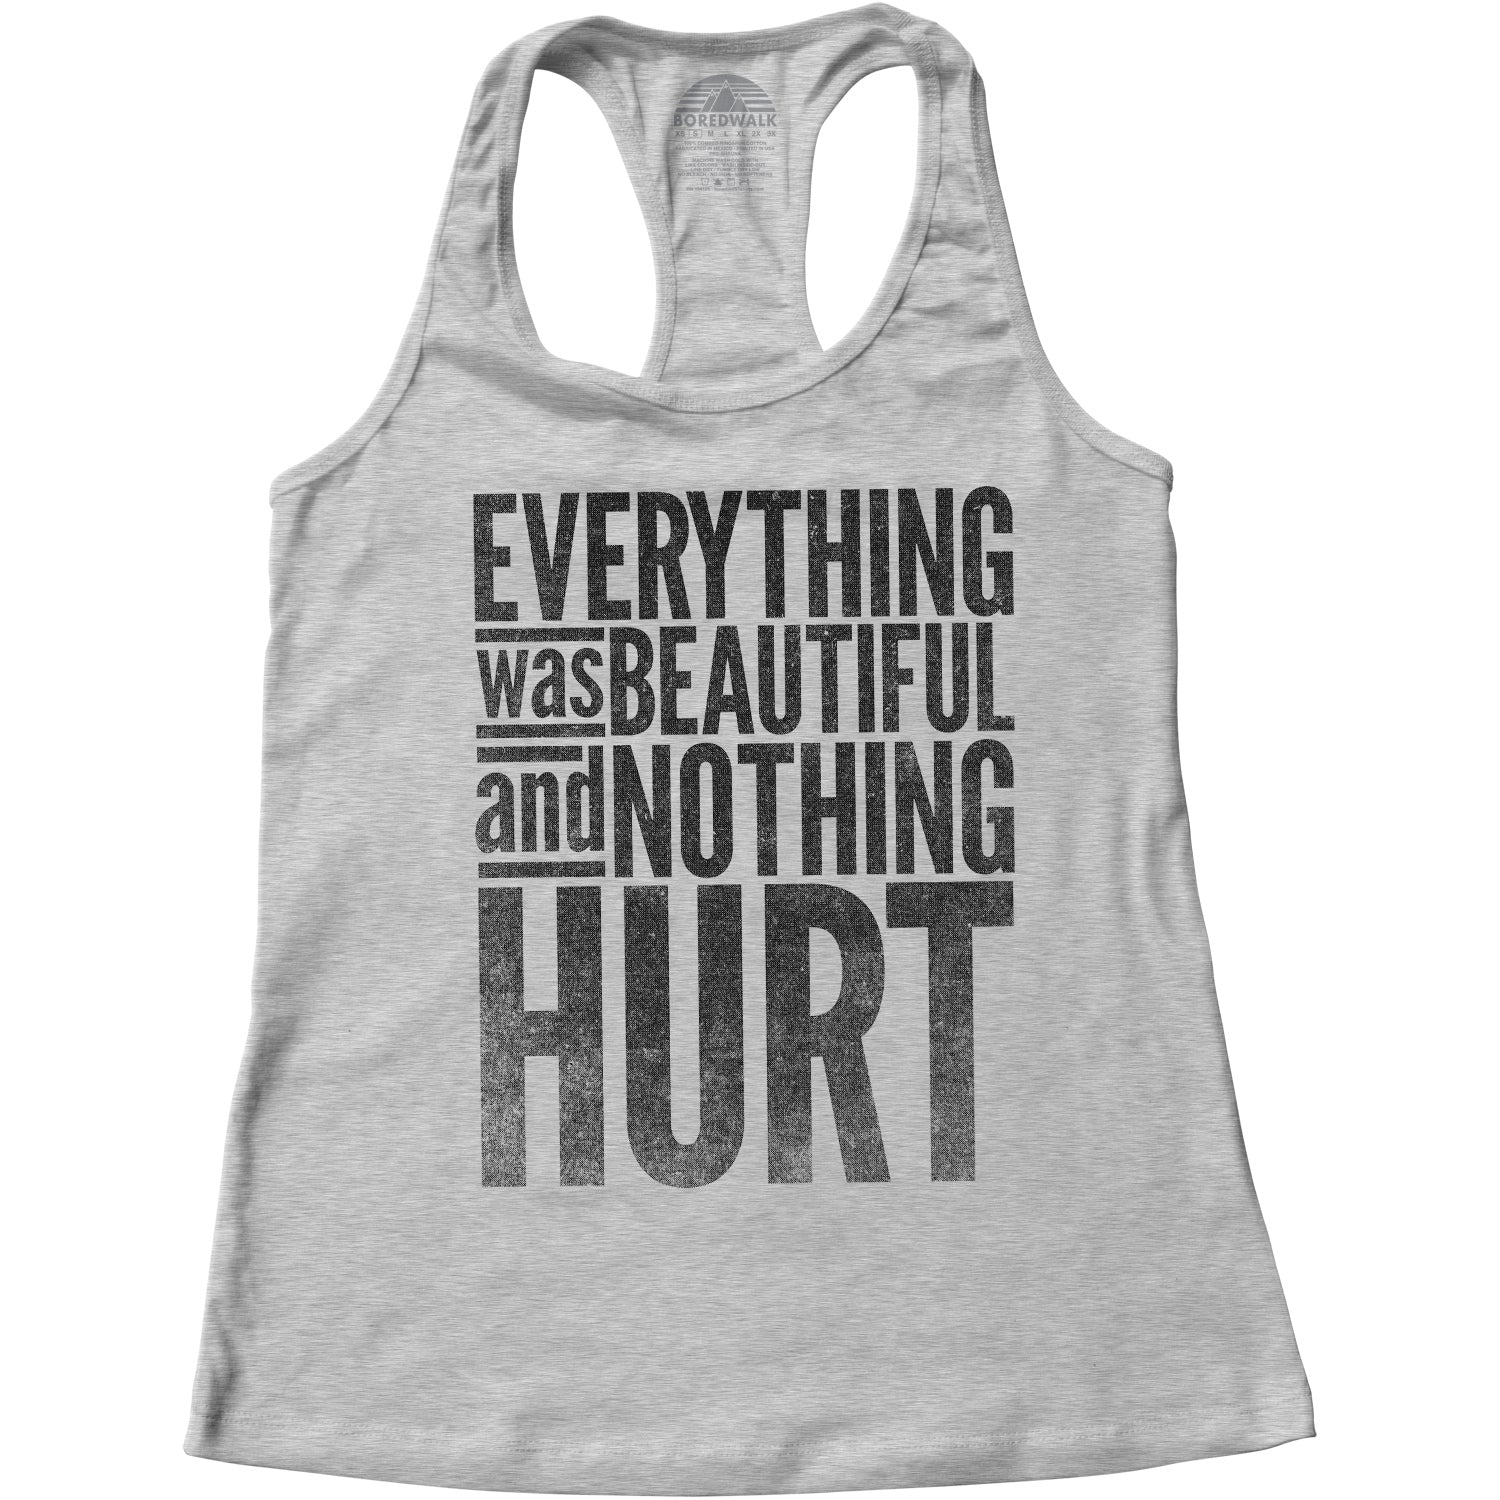 Women's Everything Was Beautiful and Nothing Hurt Racerback Tank Top